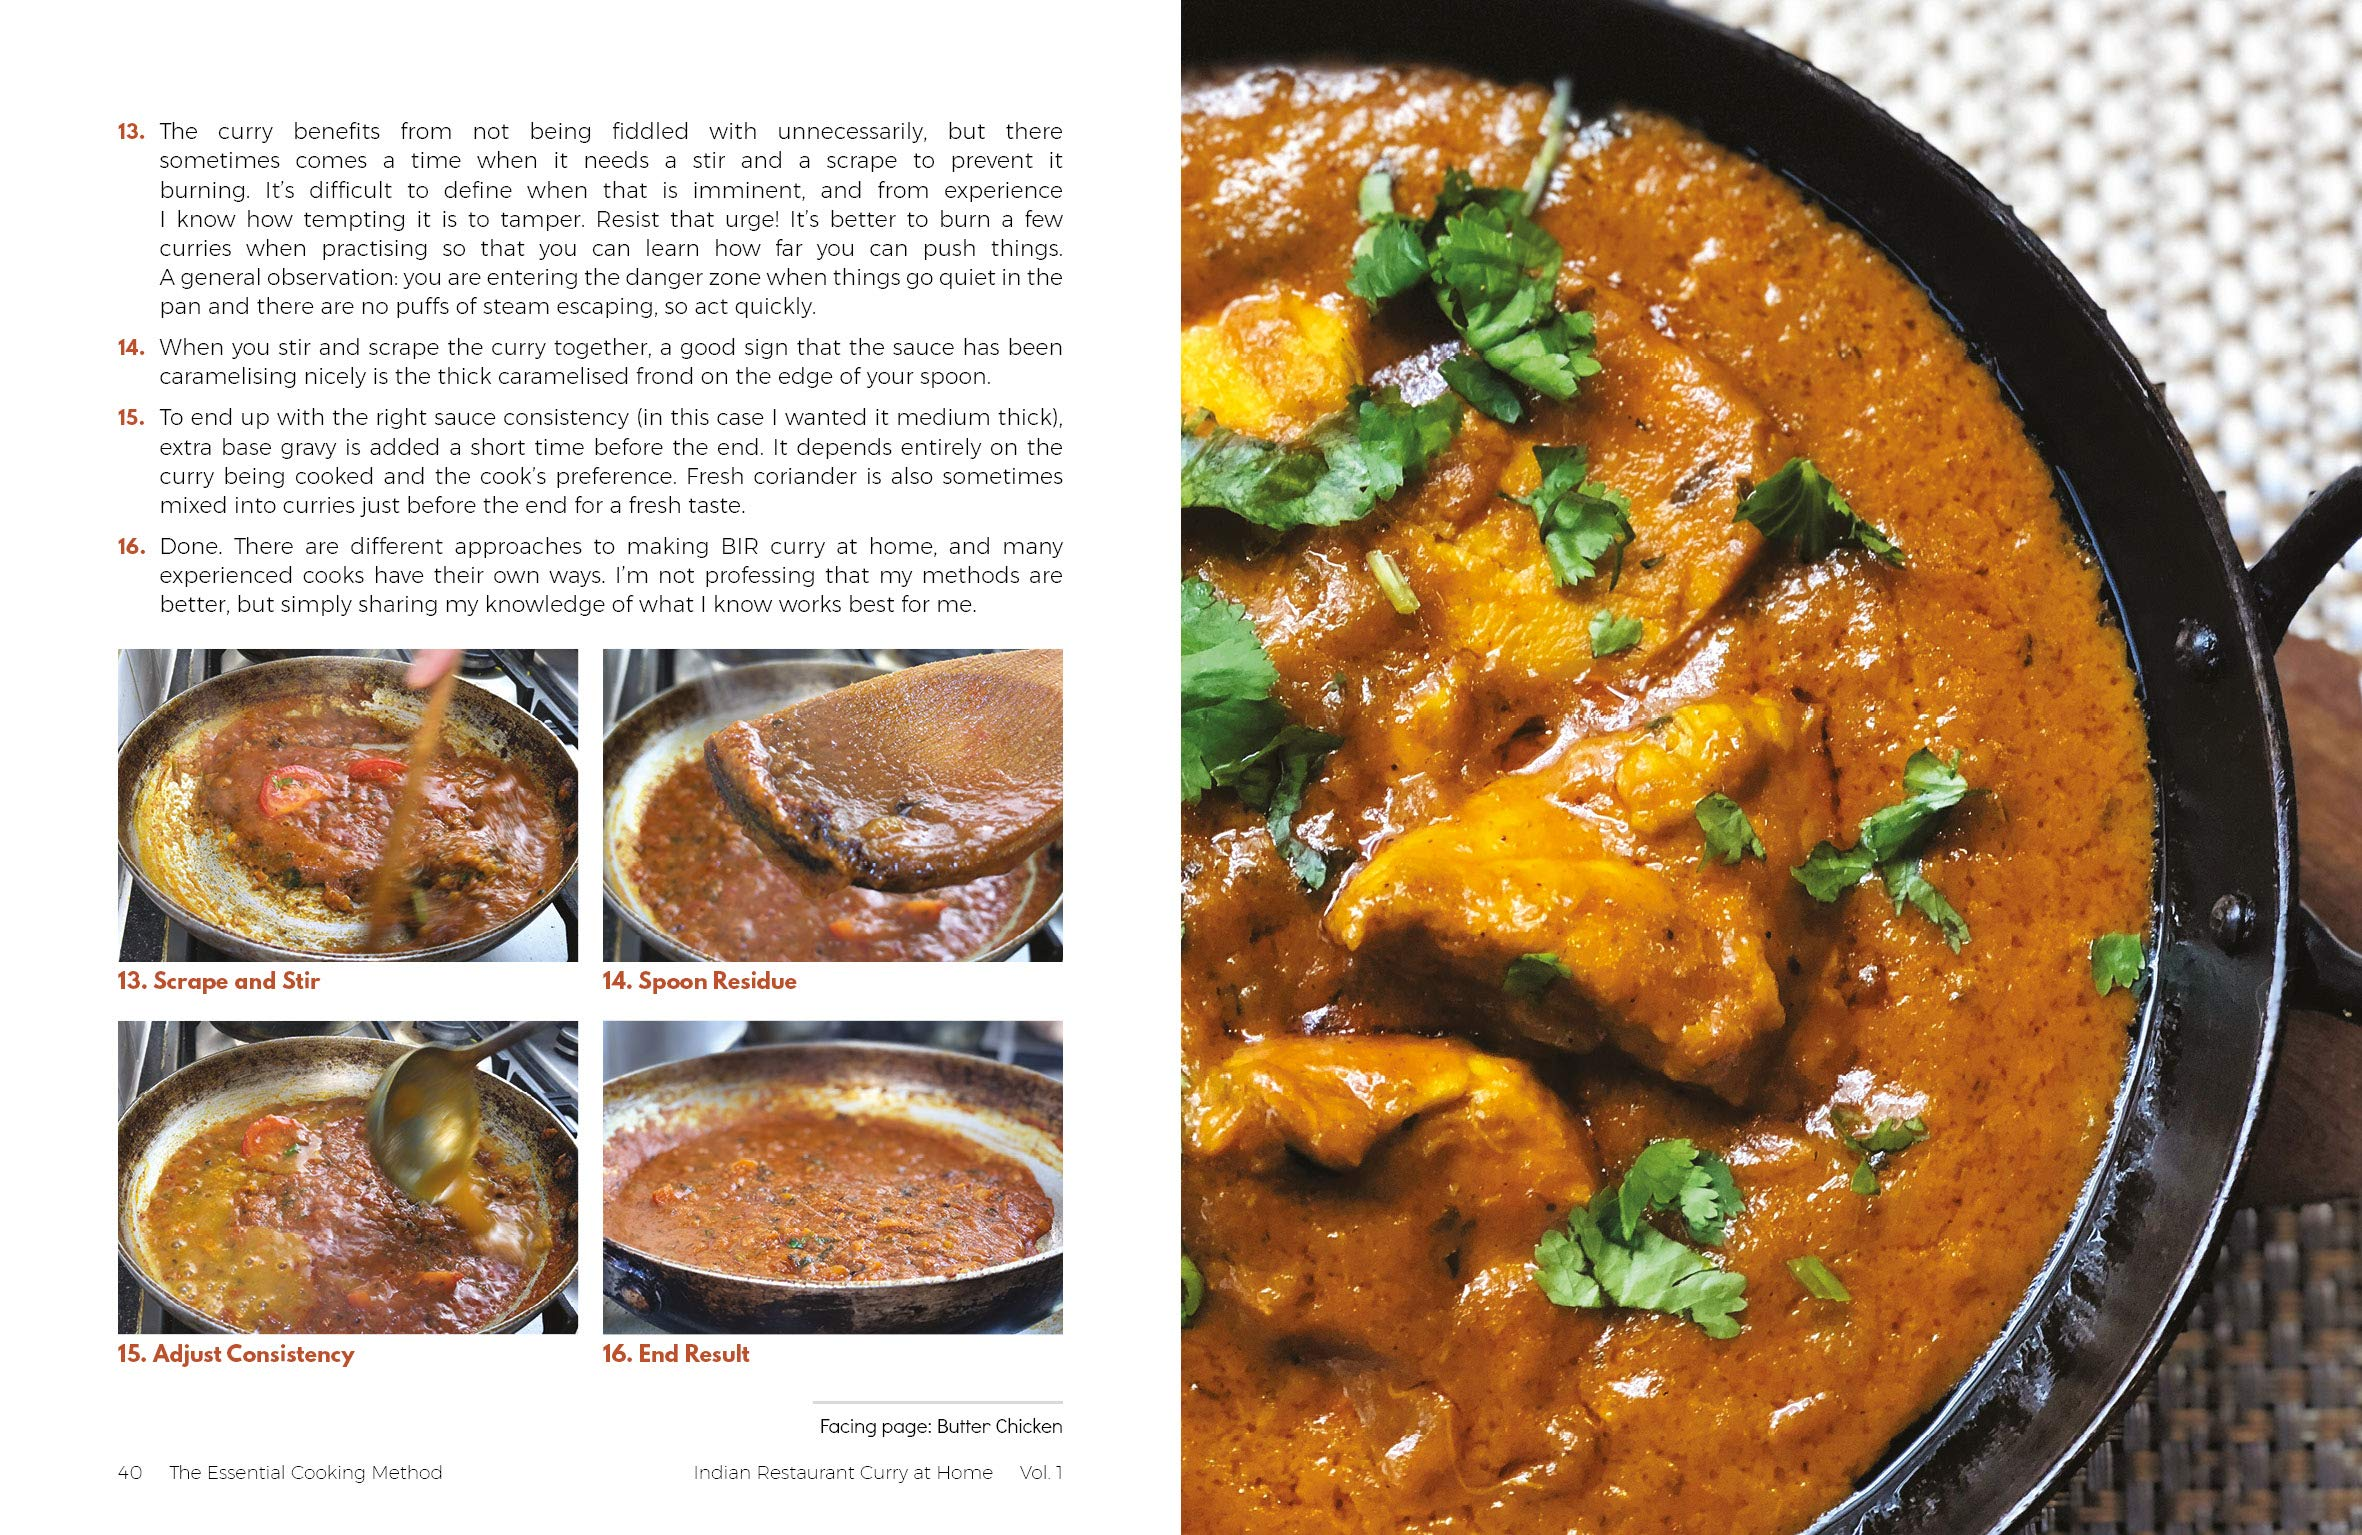 Indian Restaurant Curry at Home Volume 1: Misty Ricardo's Curry Kitchen 7